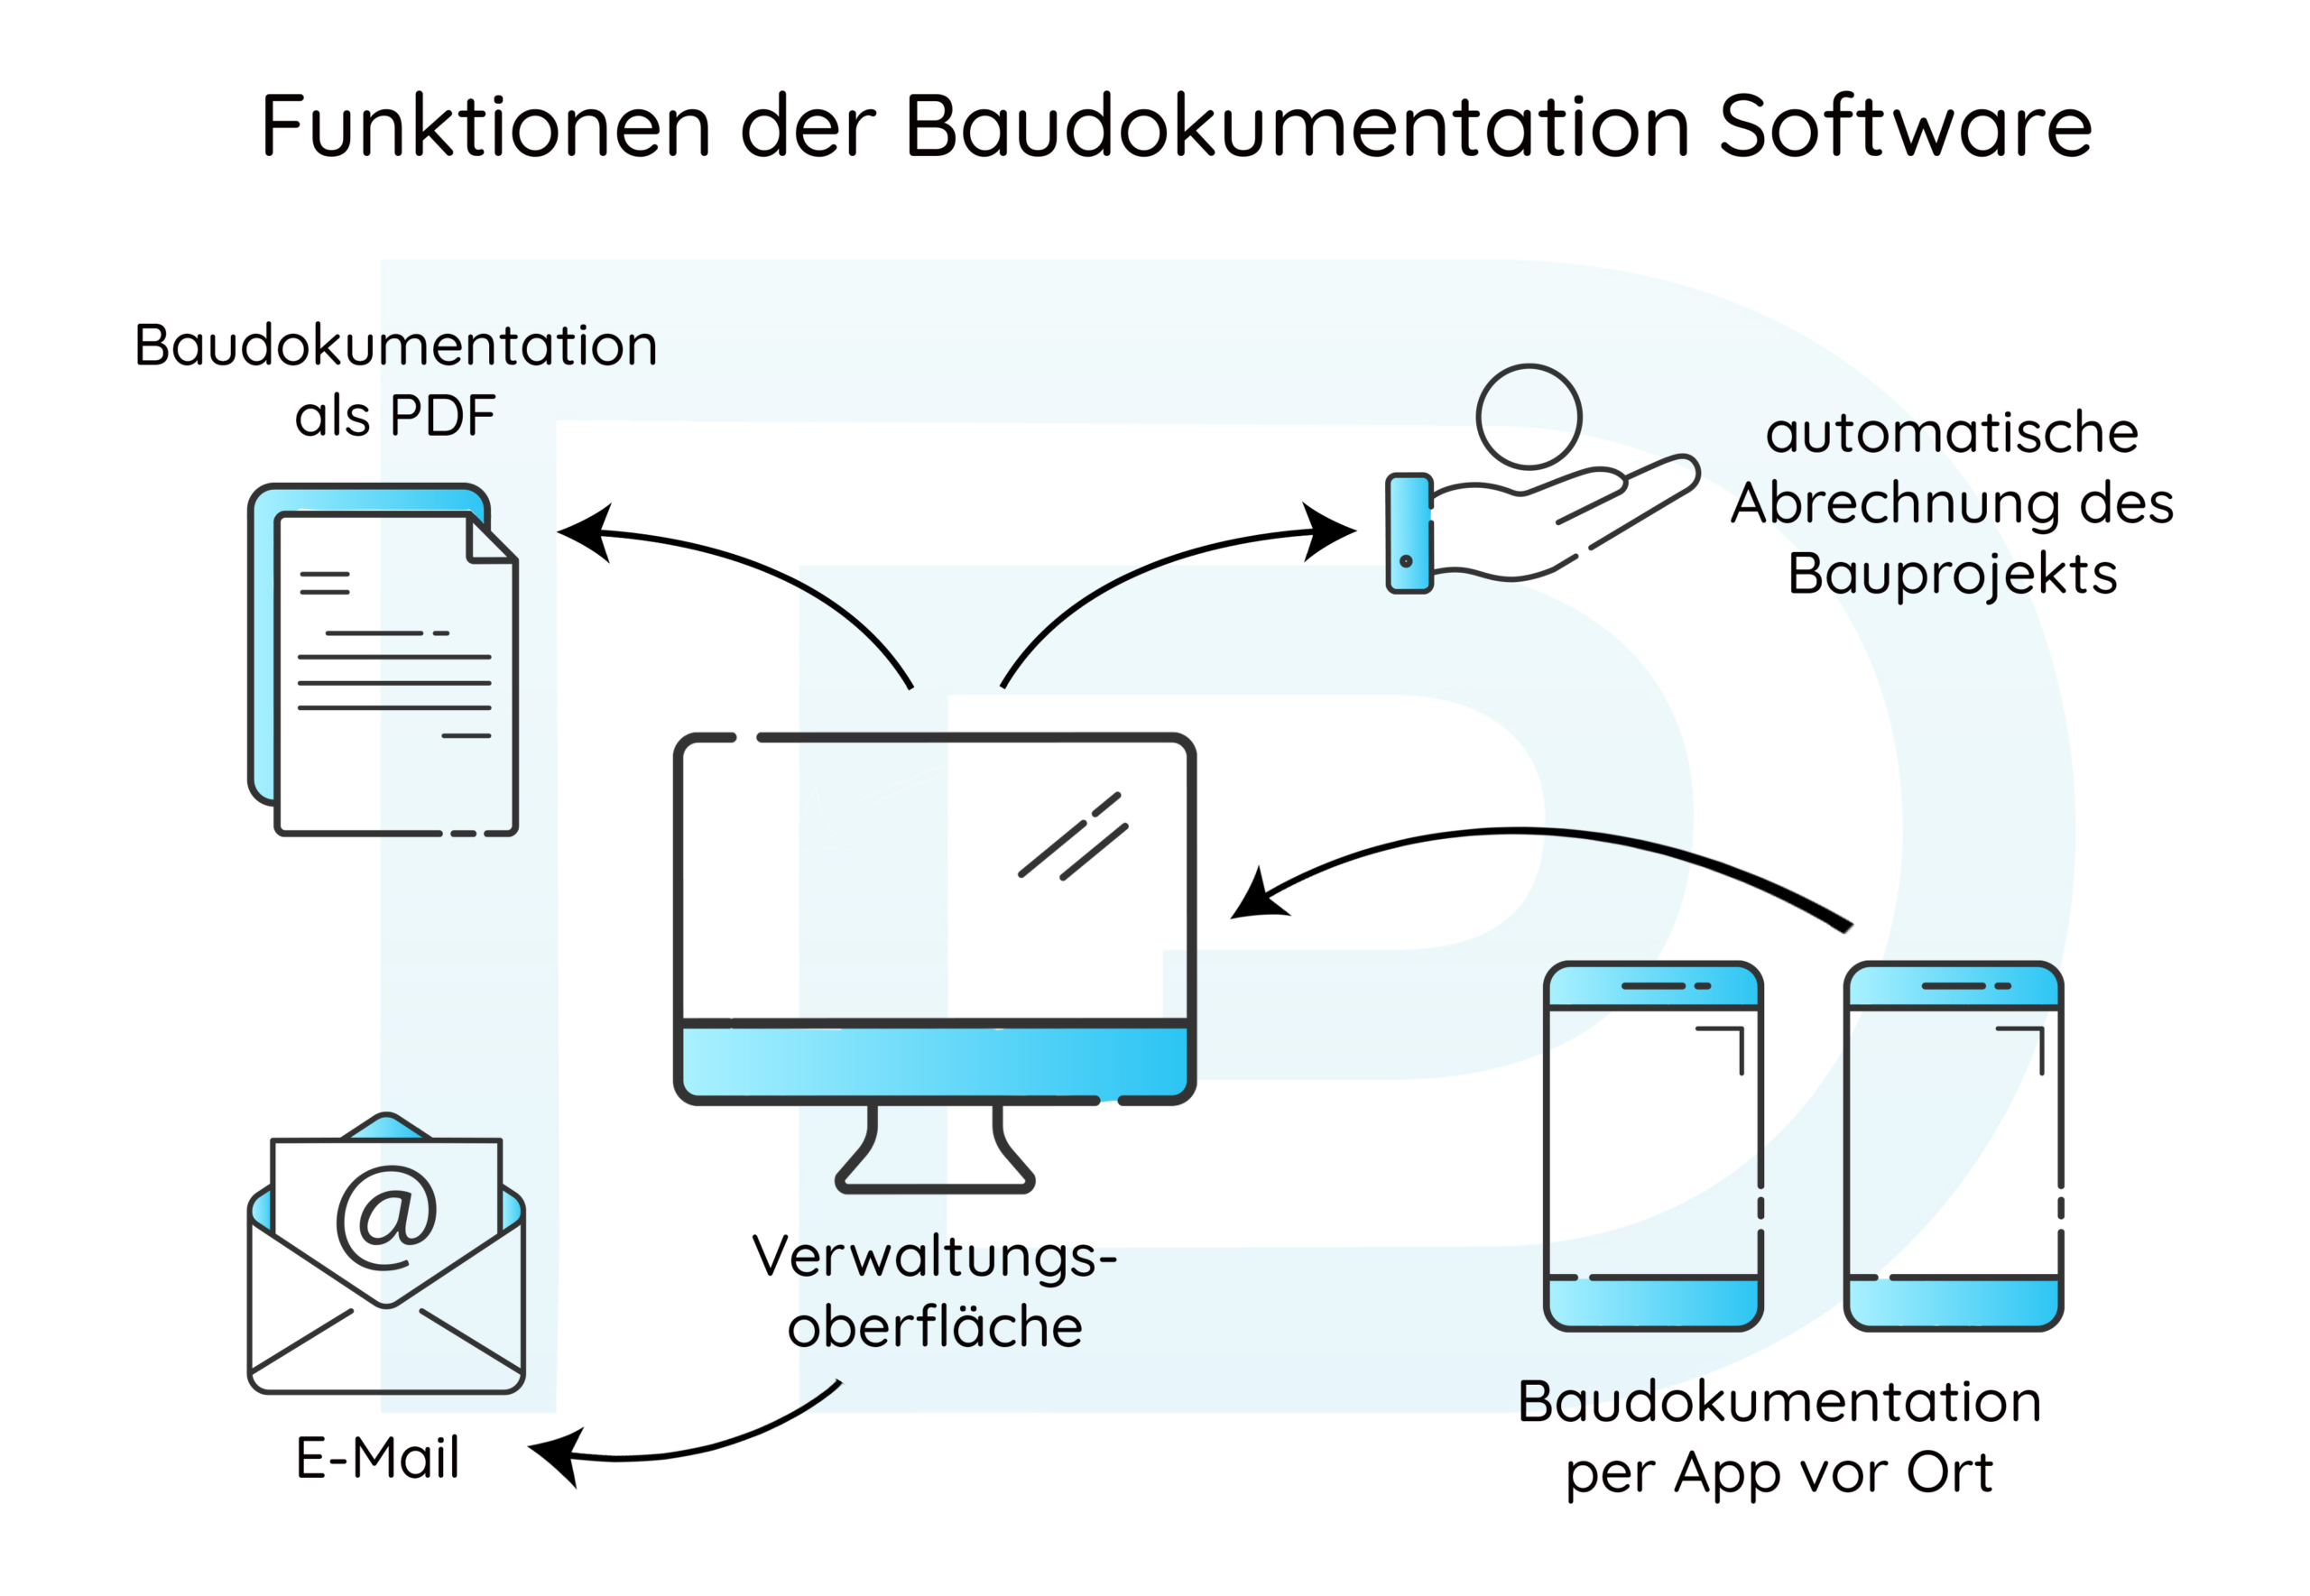 Funktionen einer Baudokumentation Software